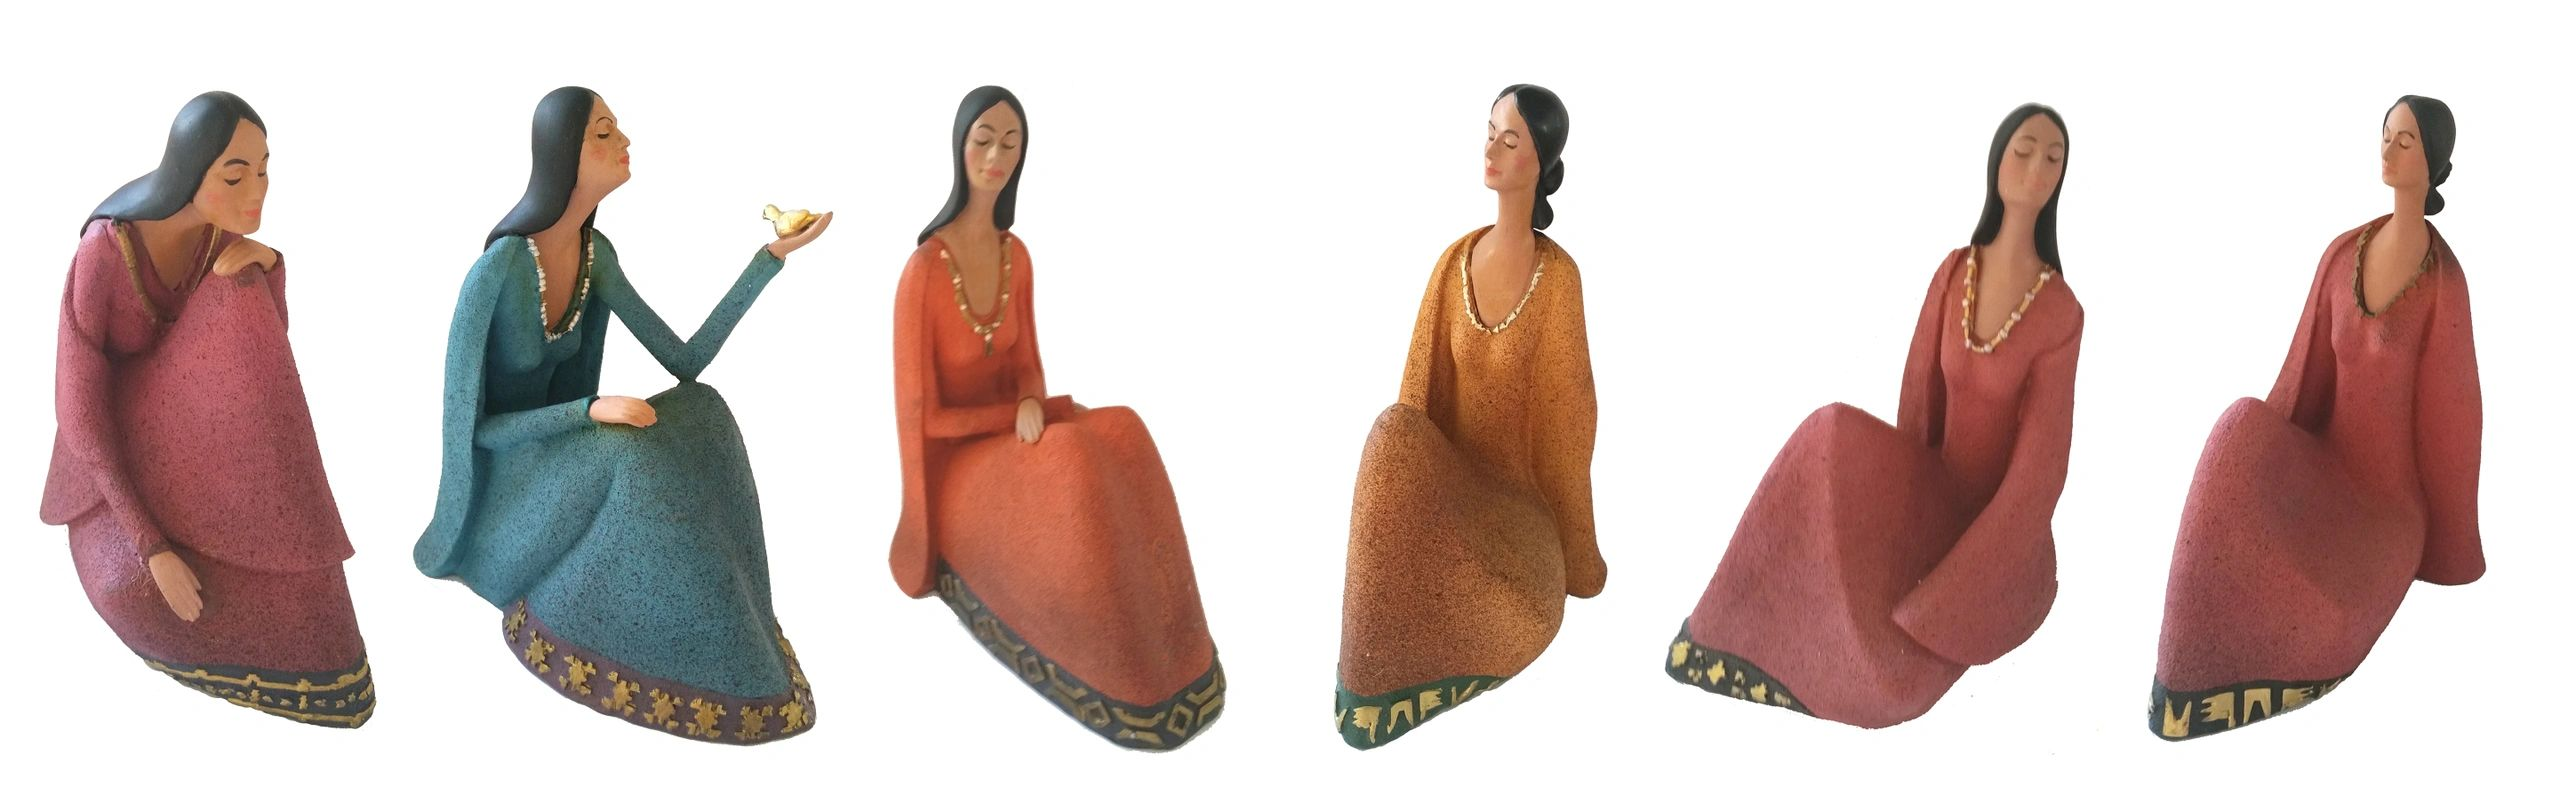 "{""blocks"":[{""key"":""6i1c9"",""text"":""The Women of Sedona.....These graceful figurines are sold as a set of 6 assorted pieces. They are hand-painted in Utah and are available in two sizes: 6\"" and 8\"". Min: 1 set (6 pcs) of either size "",""type"":""unstyled"",""depth"":0,""inlineStyleRanges"":[],""entityRanges"":[],""data"":{}}],""entityMap"":{}}"